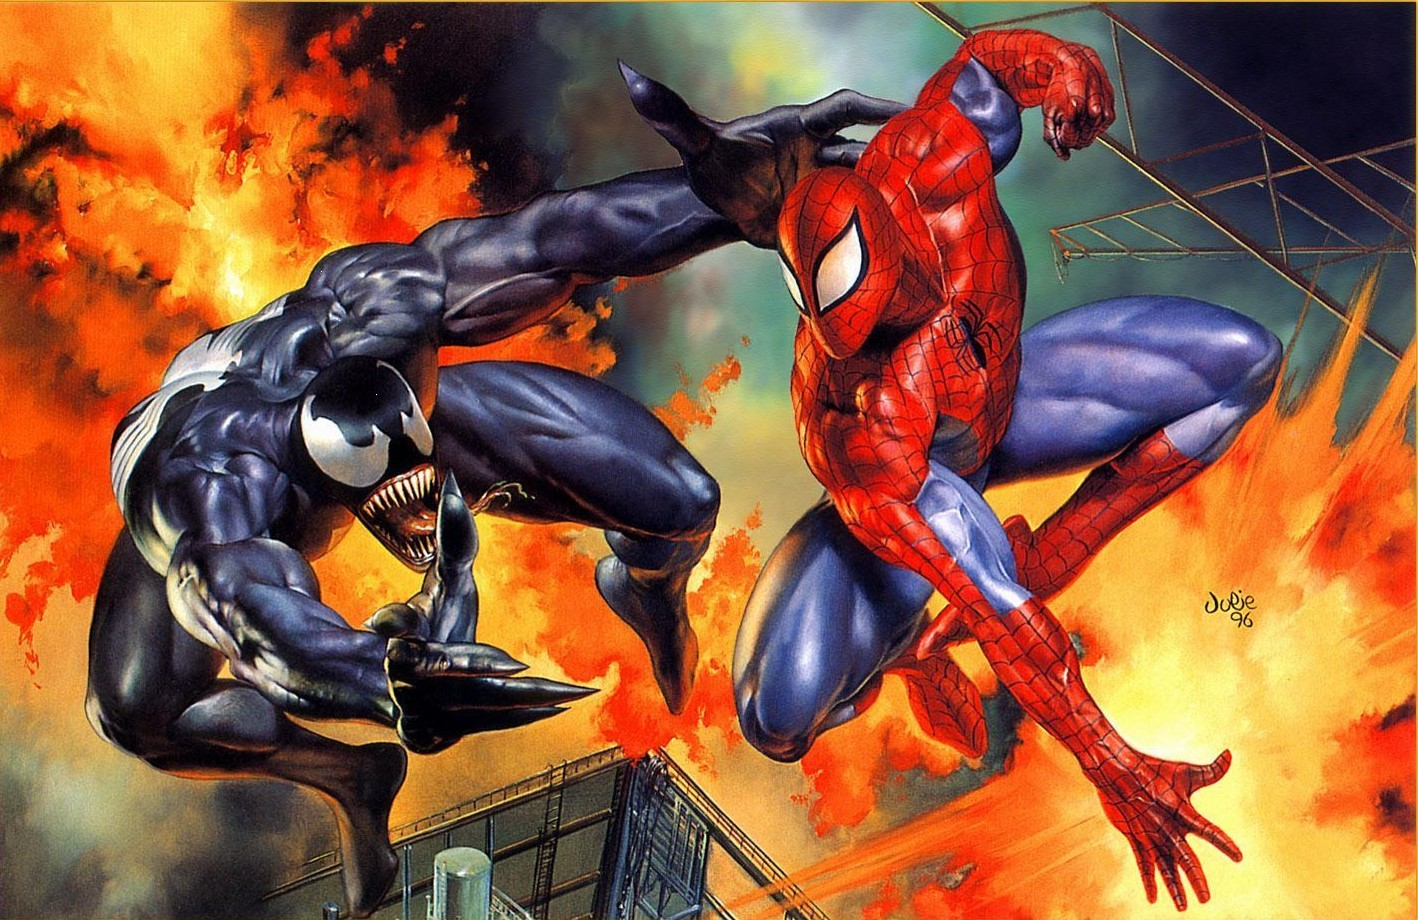 Venom Spider-Man marvel comics HD Wallpaper